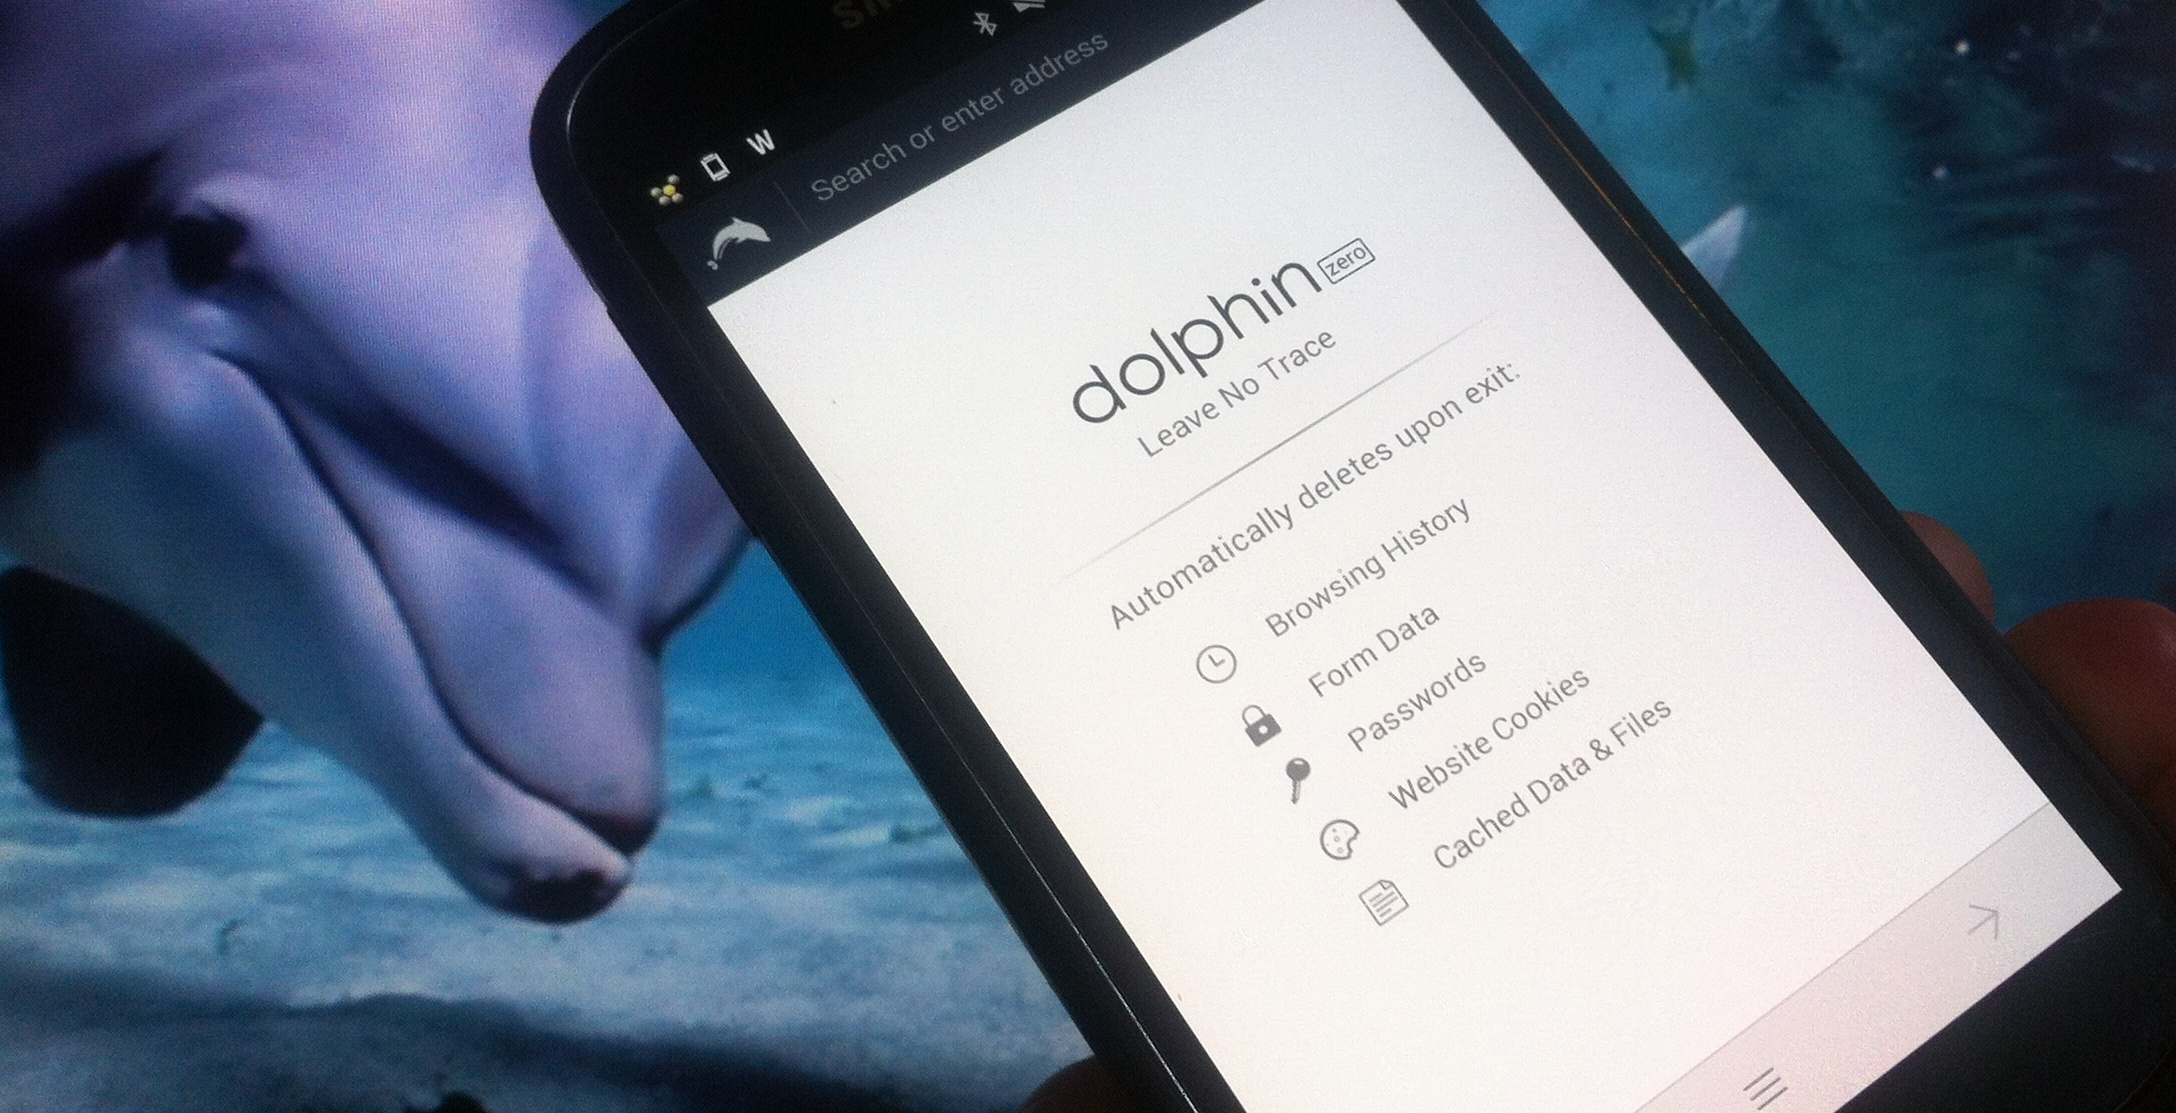 Dolphin goes ephemeral with Zero, a new privacy-focused mobile browser